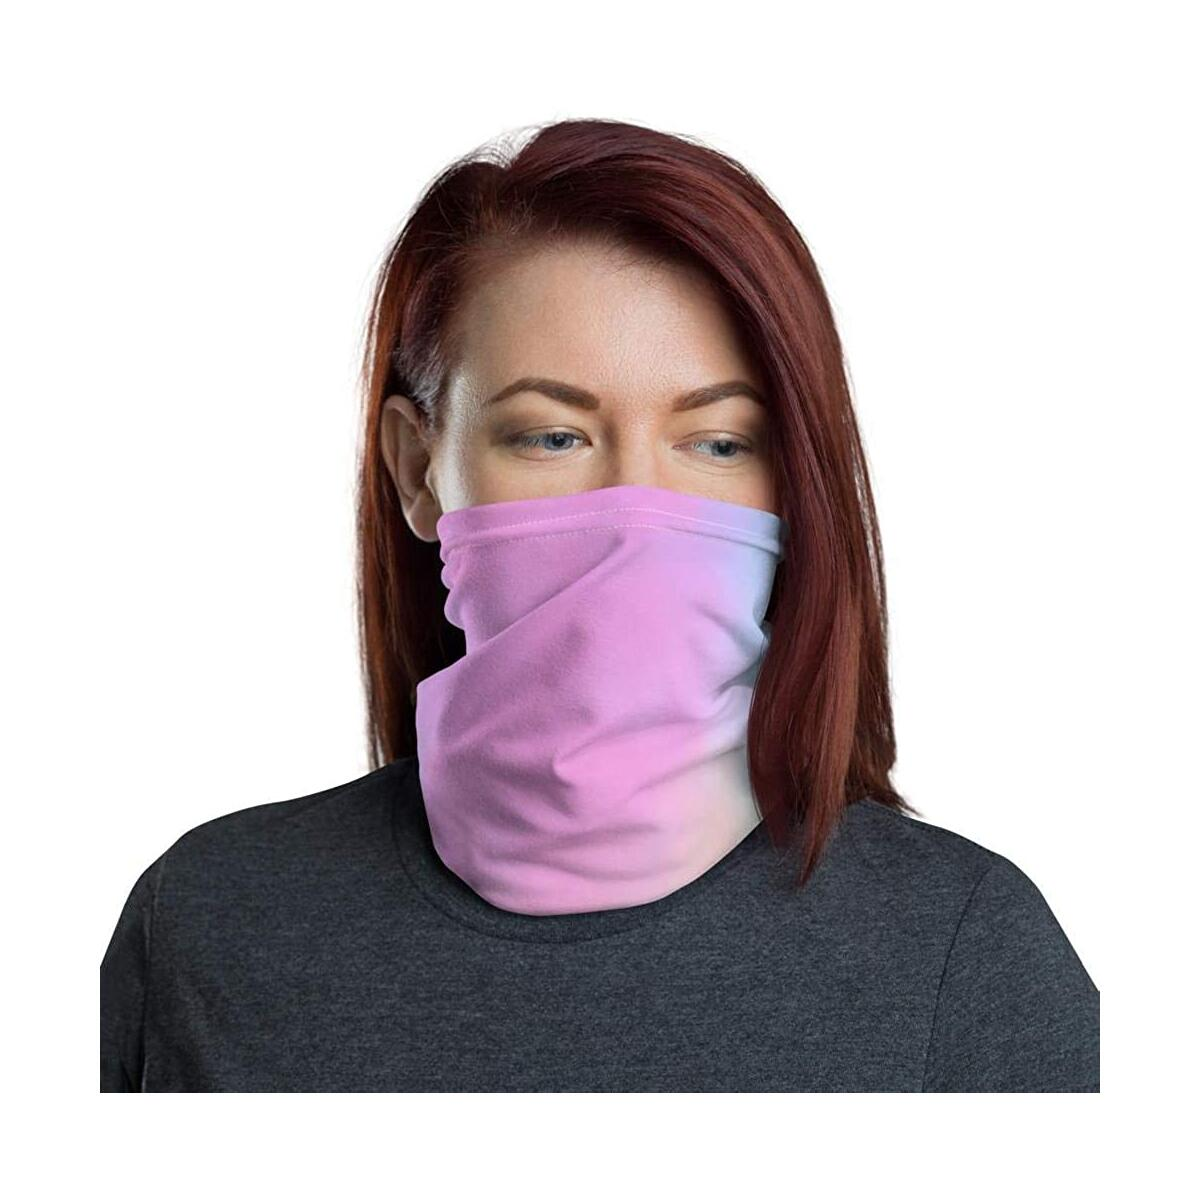 Neck Gaiter Face Mask Mouth Cover Bandanas for Dust, Outdoors, Festivals, Sports